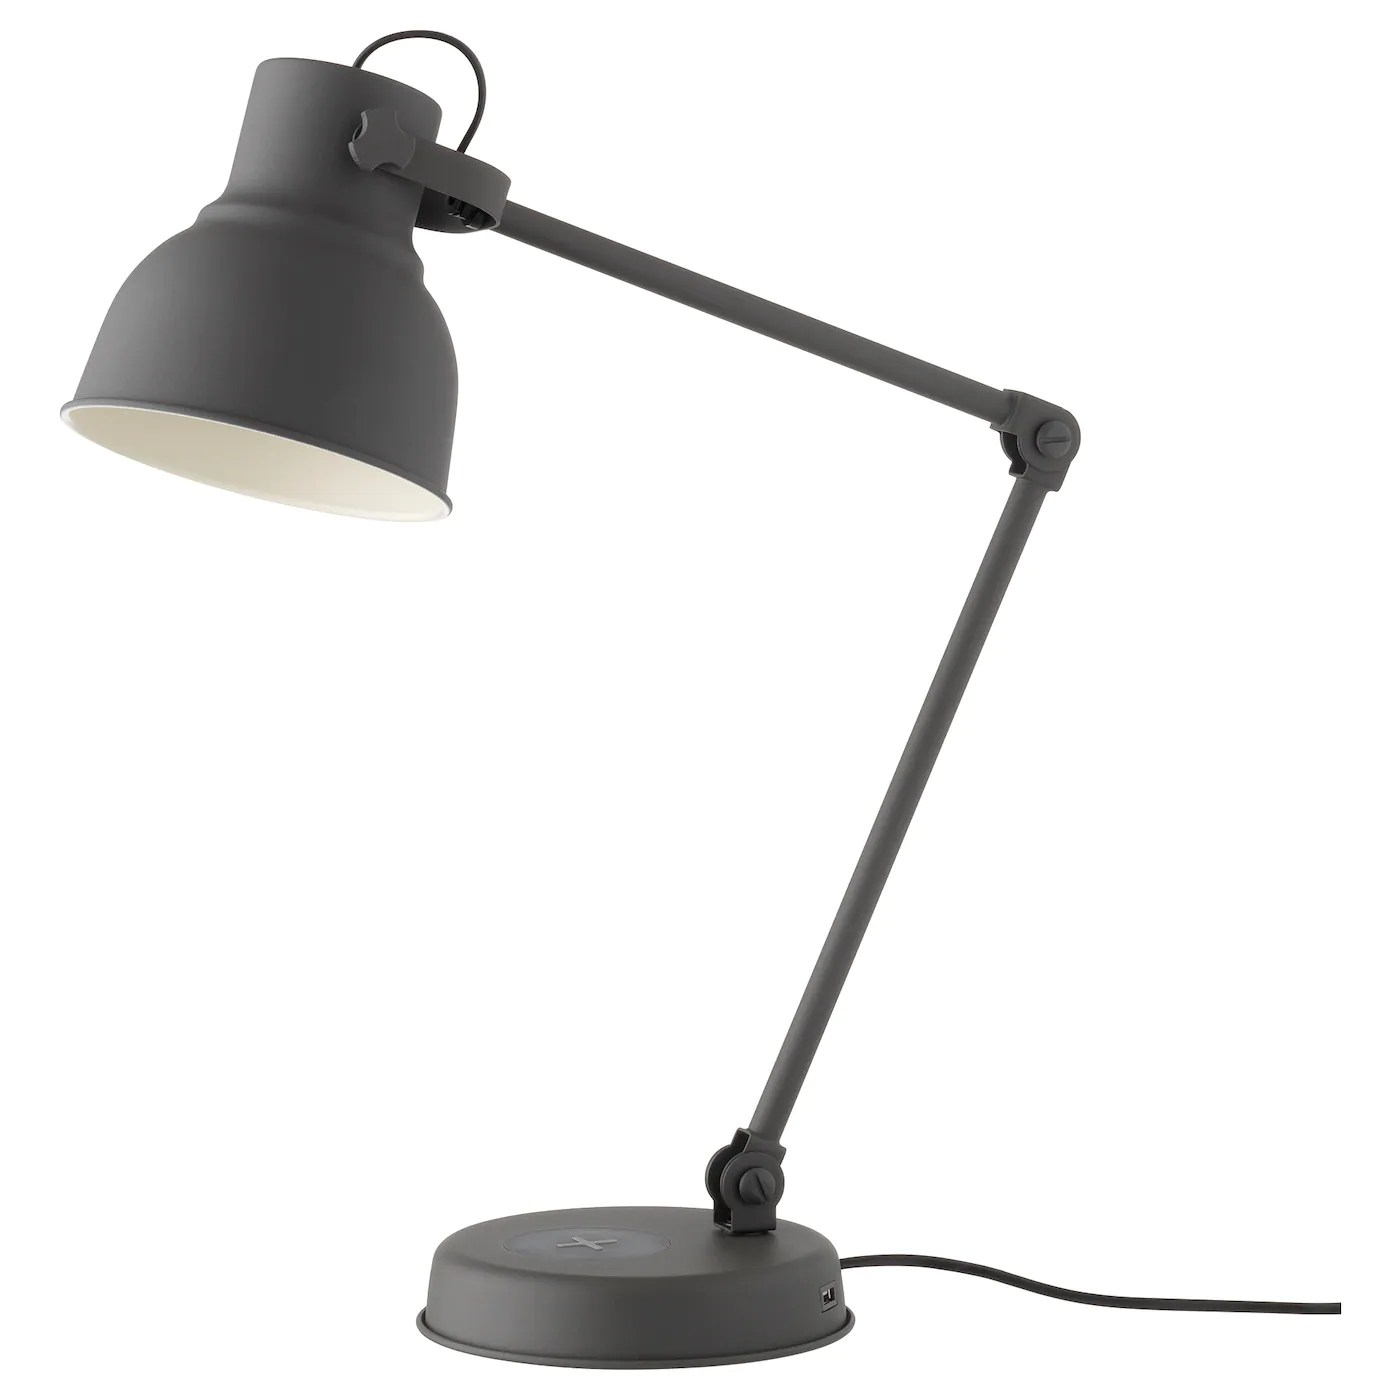 hektar work lamp with